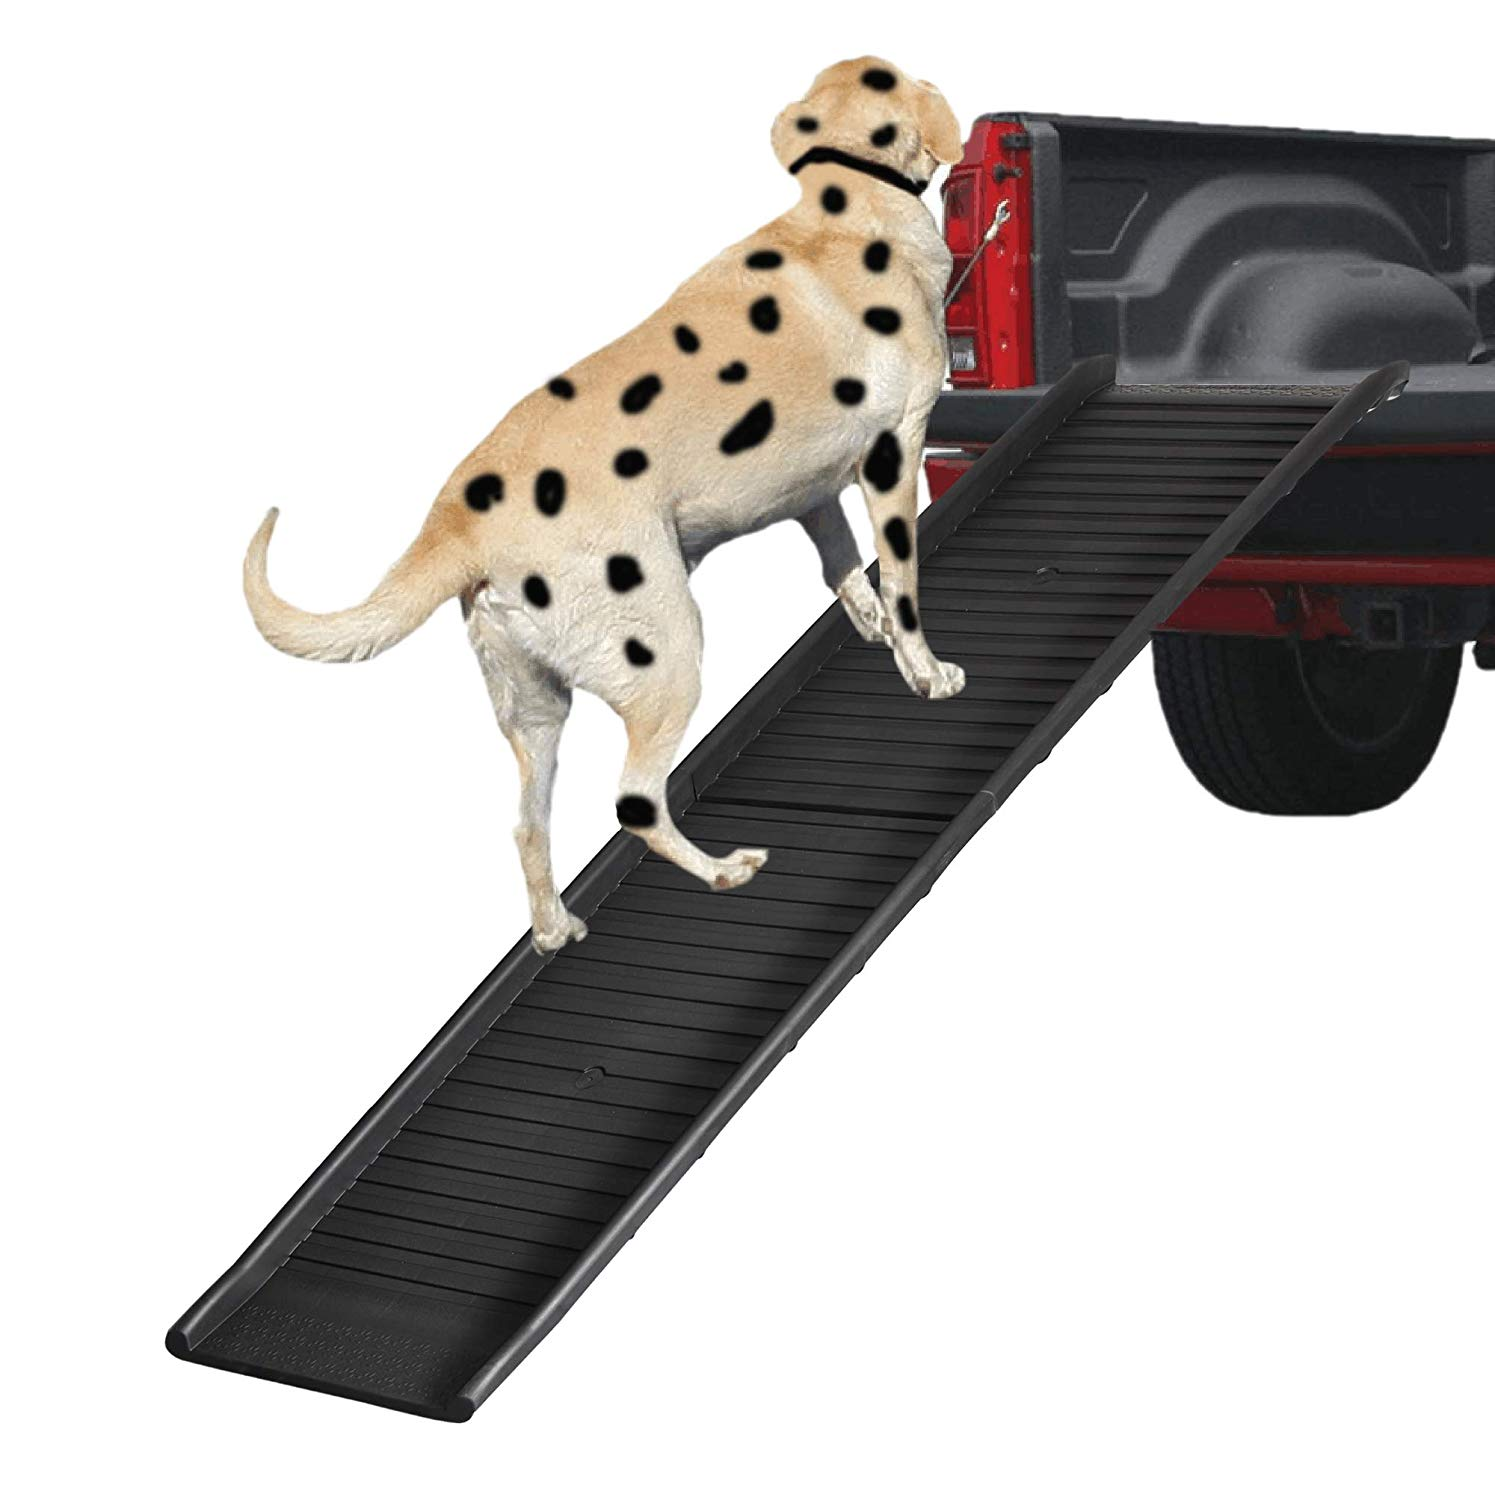 REDWOLF Dog Pet Sturdy Stable Car Ramp for 180lb Large Small Old Ill Dog Heavy Duty Indoor Outdoor Foldable Bridge Ramps Textured Surface Fit Truck SUV Pickup Vehicle